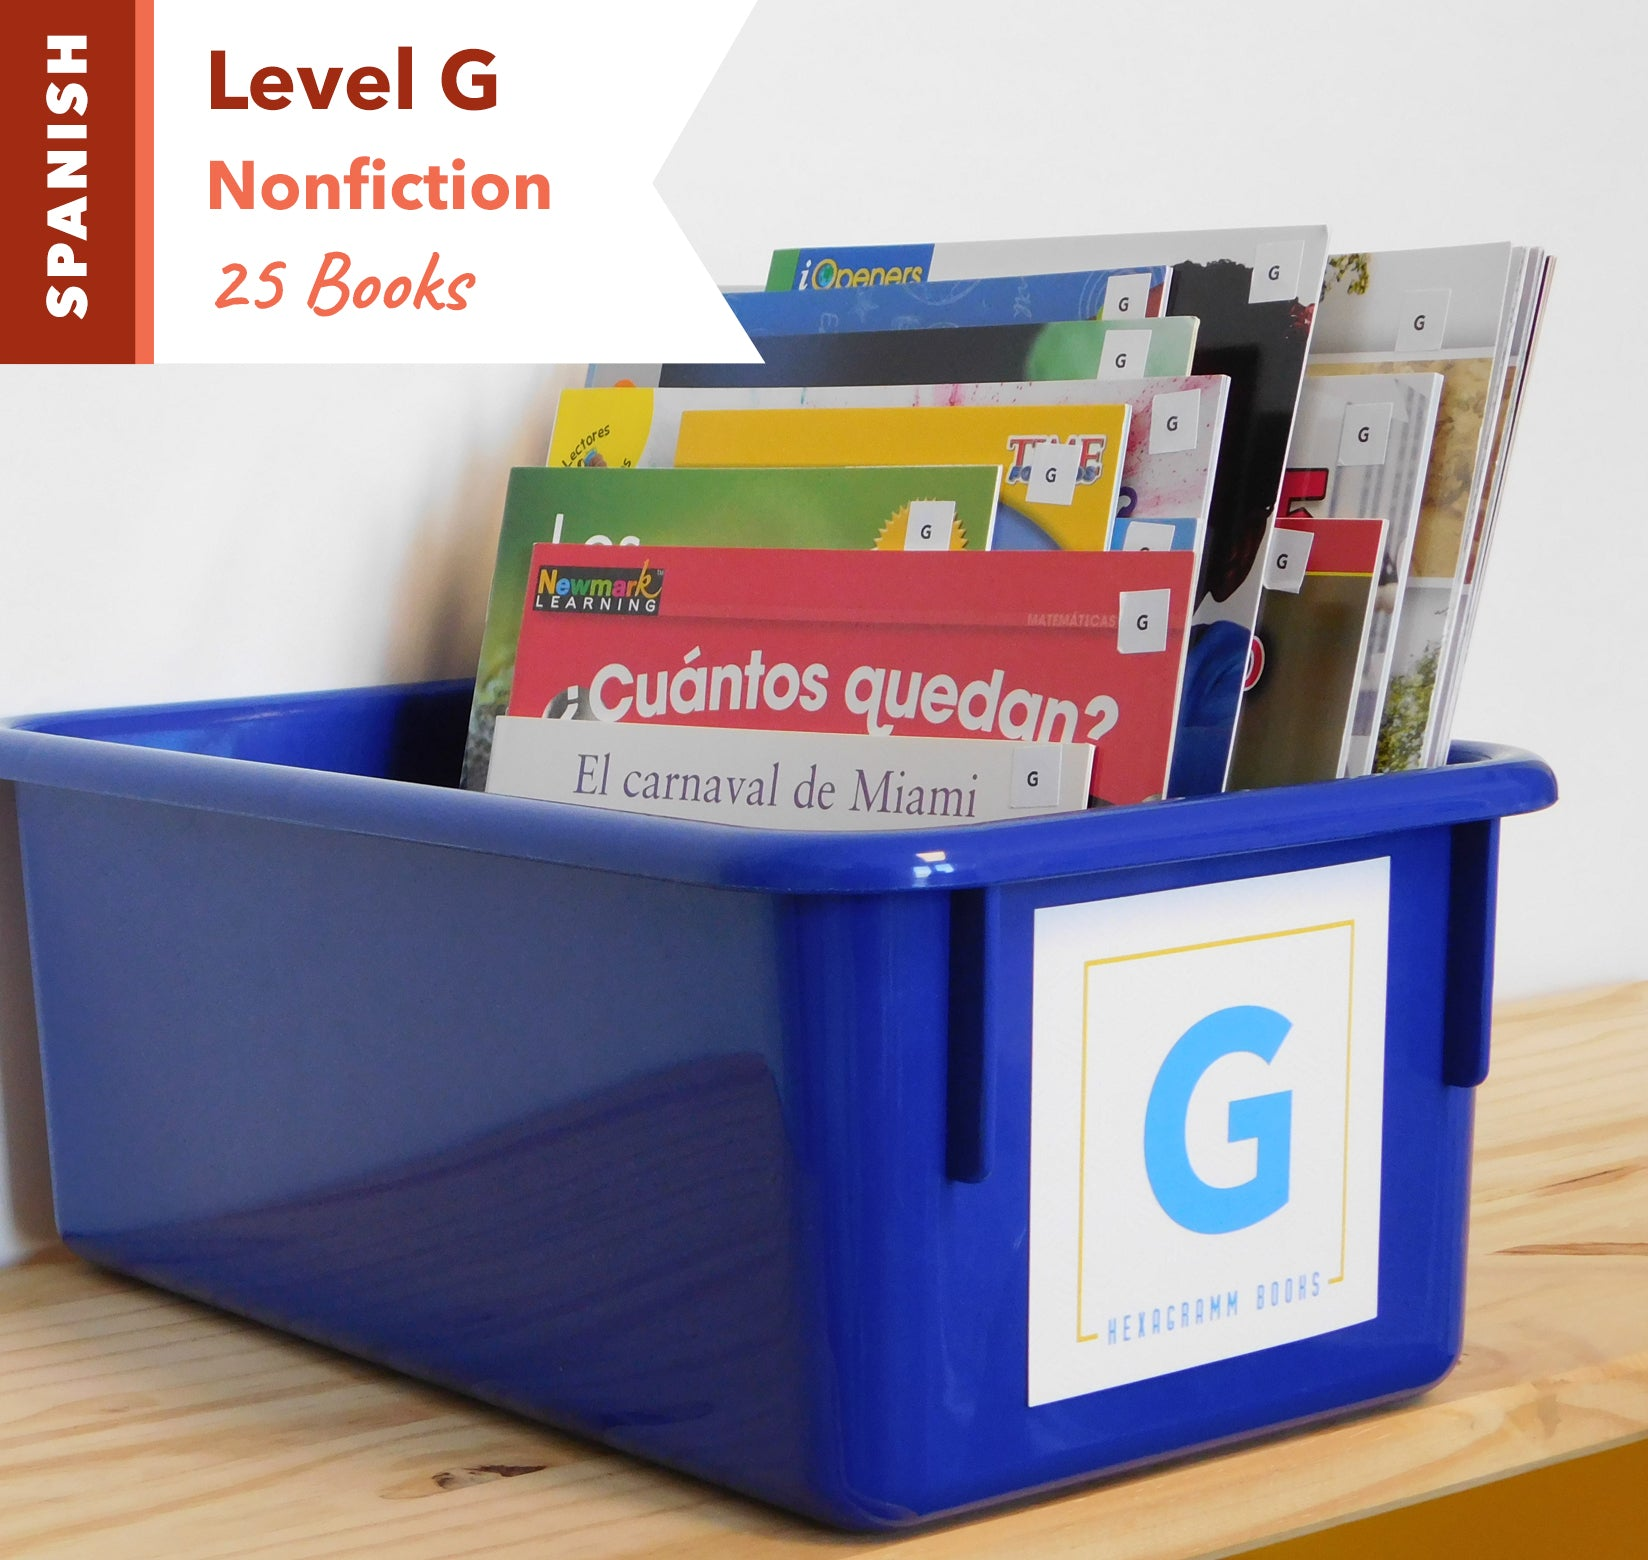 Level G, Bundle of 25 (Nonfiction) Spanish